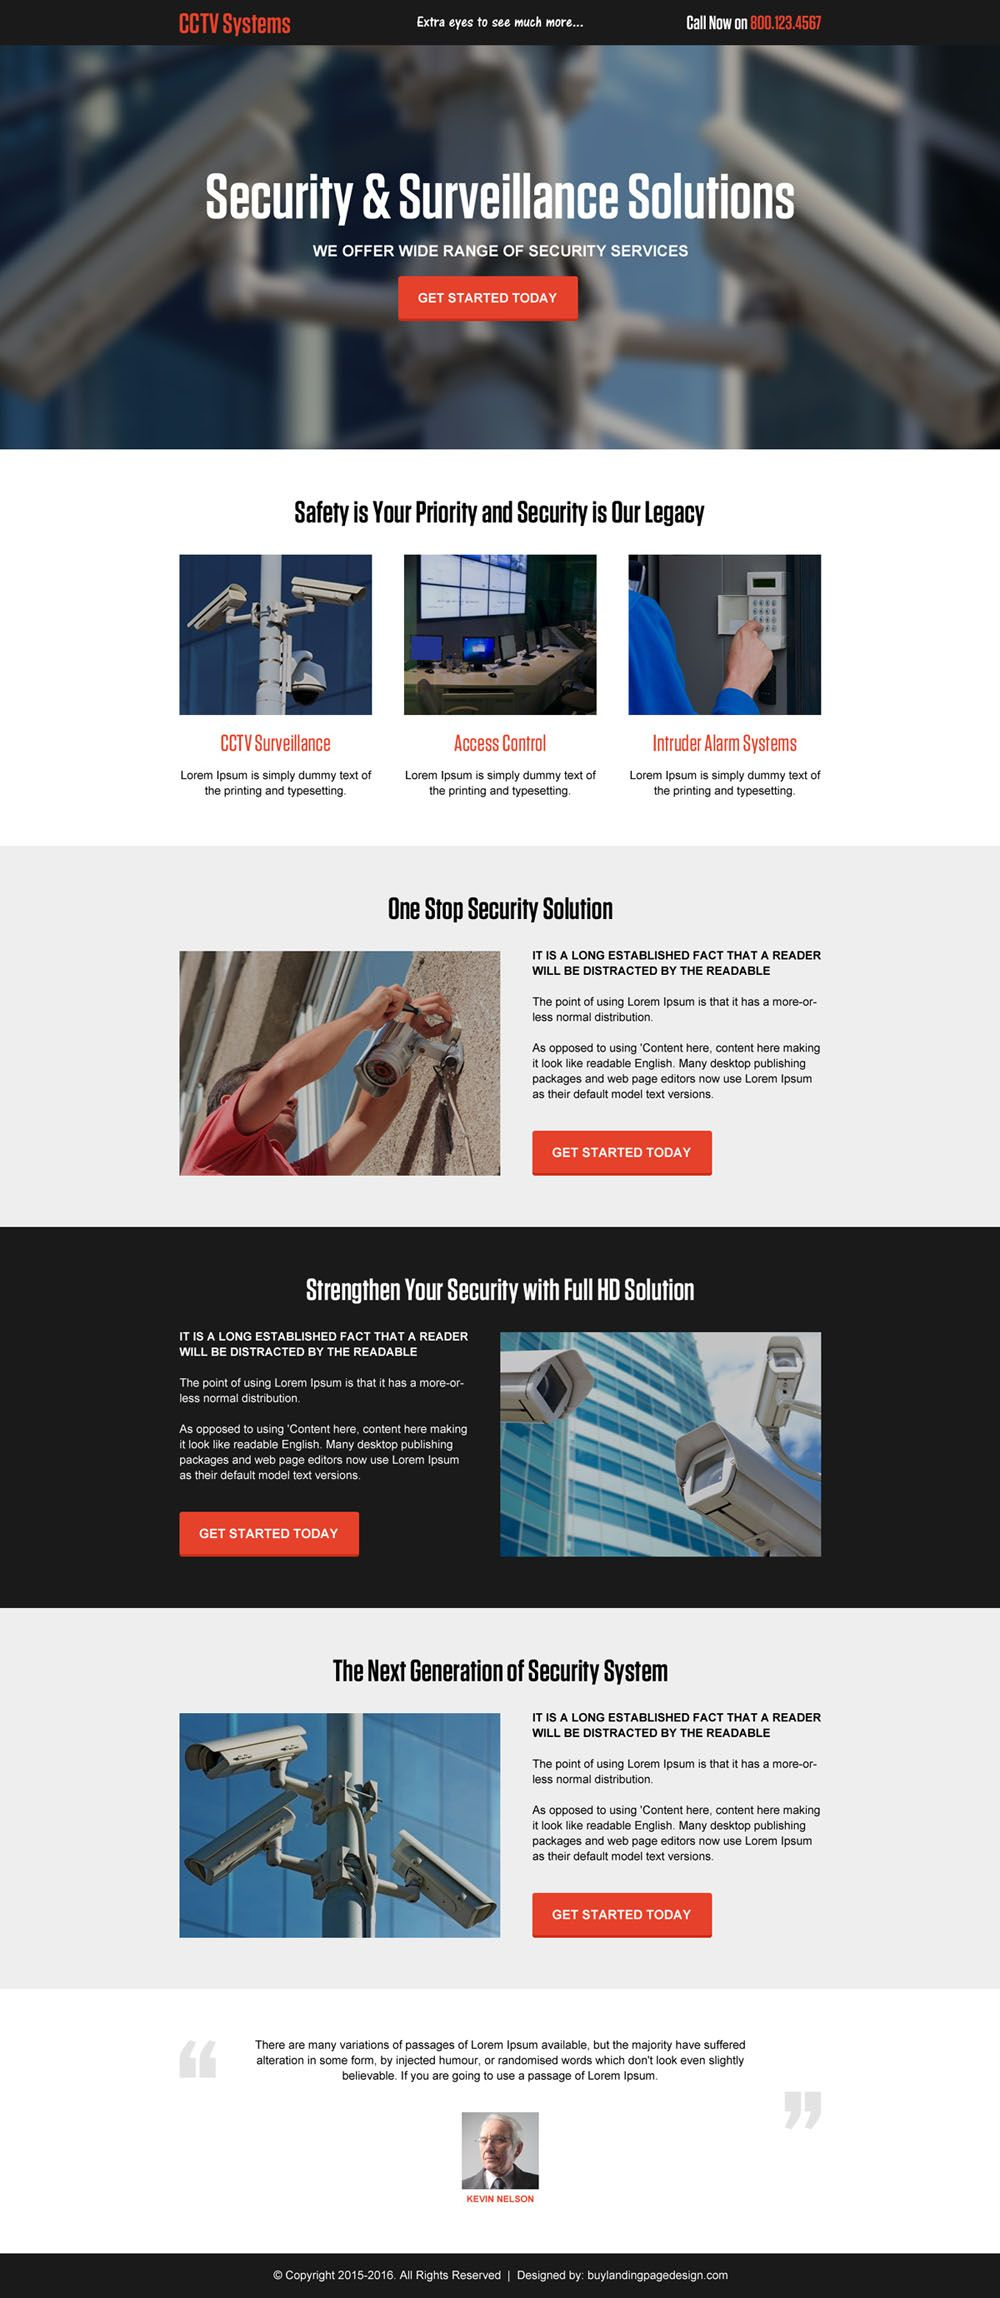 Cctv Security System Solution Responsive Landing Page Design Part 78